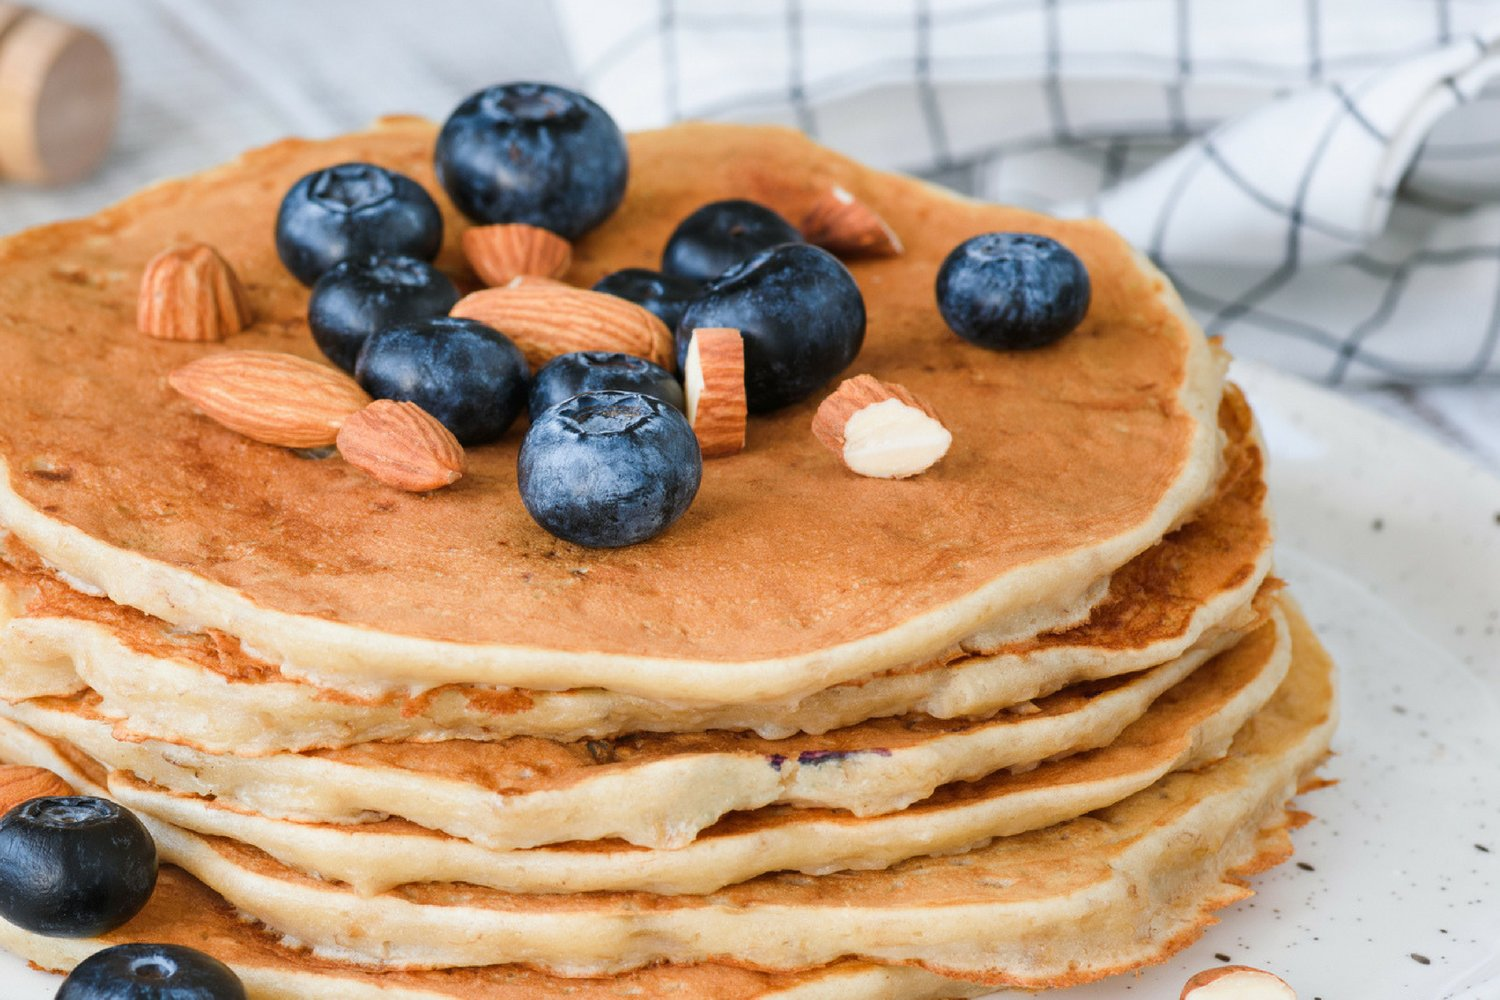 Low carb almond flour pancakes with blueberries and almonds on a white plate.